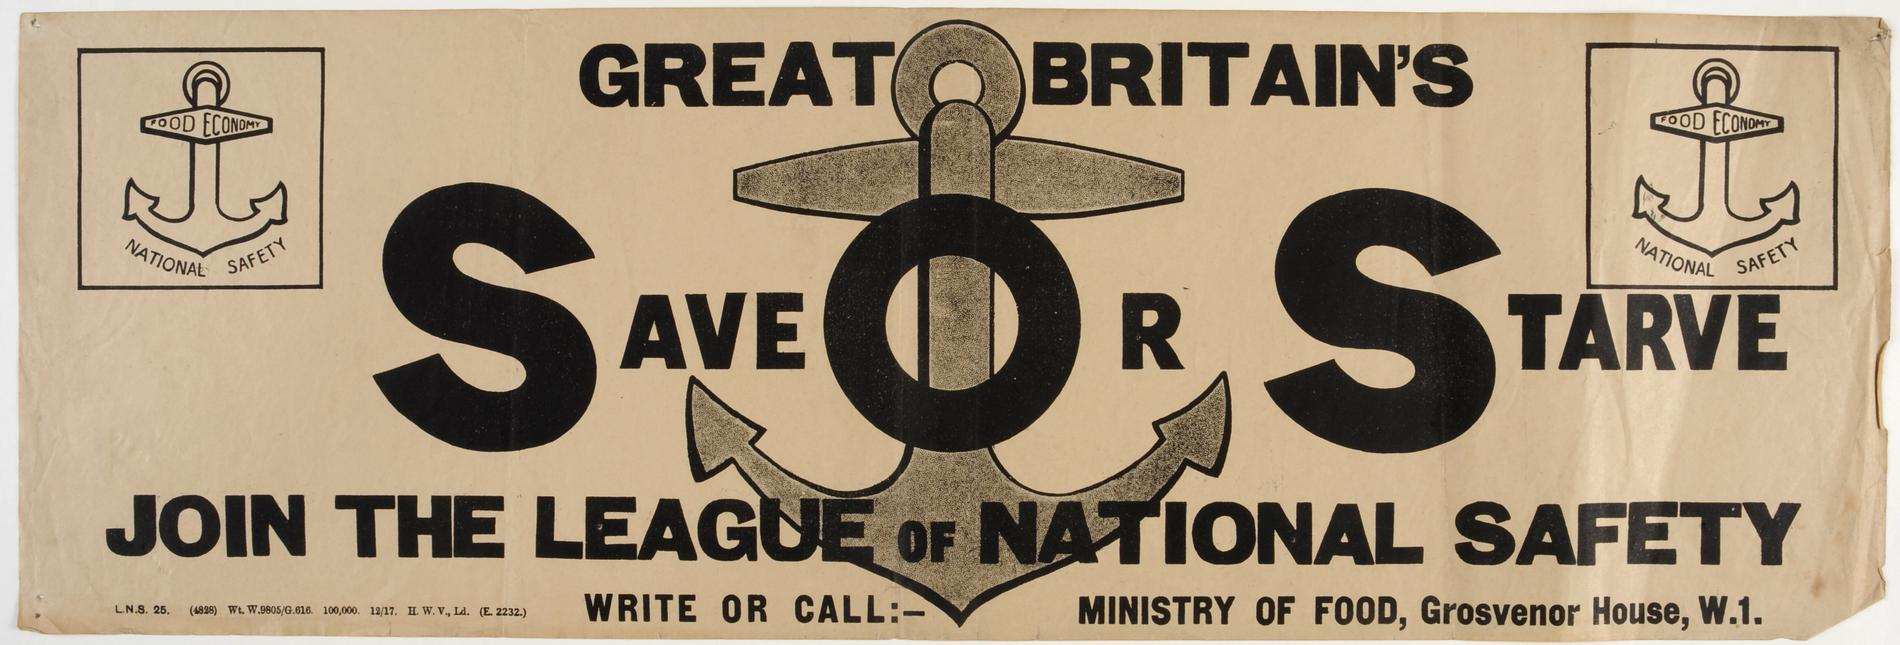 Great Britain's Save or Starve. Join the League of National Safety (Poster)